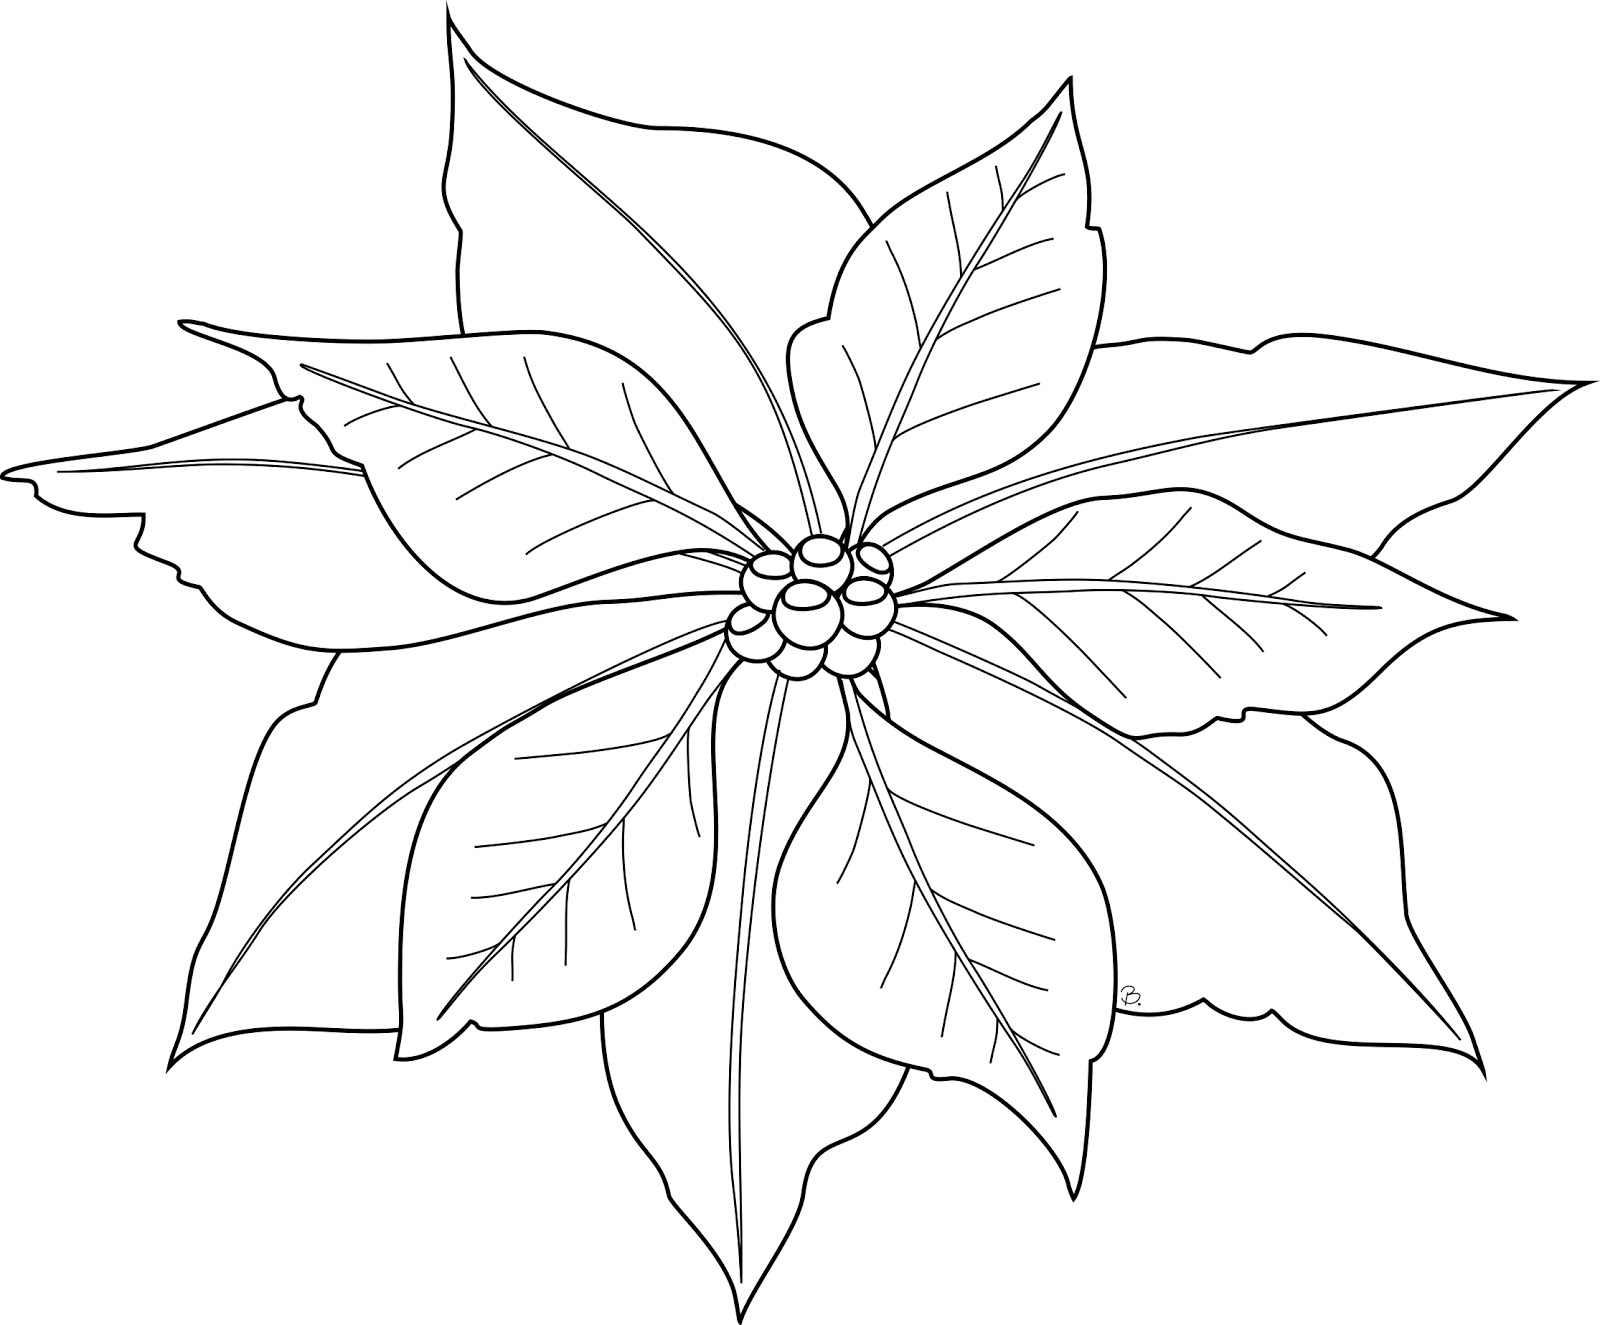 poinsettia coloring pages free printable poinsettia coloring pages for kids pages poinsettia coloring